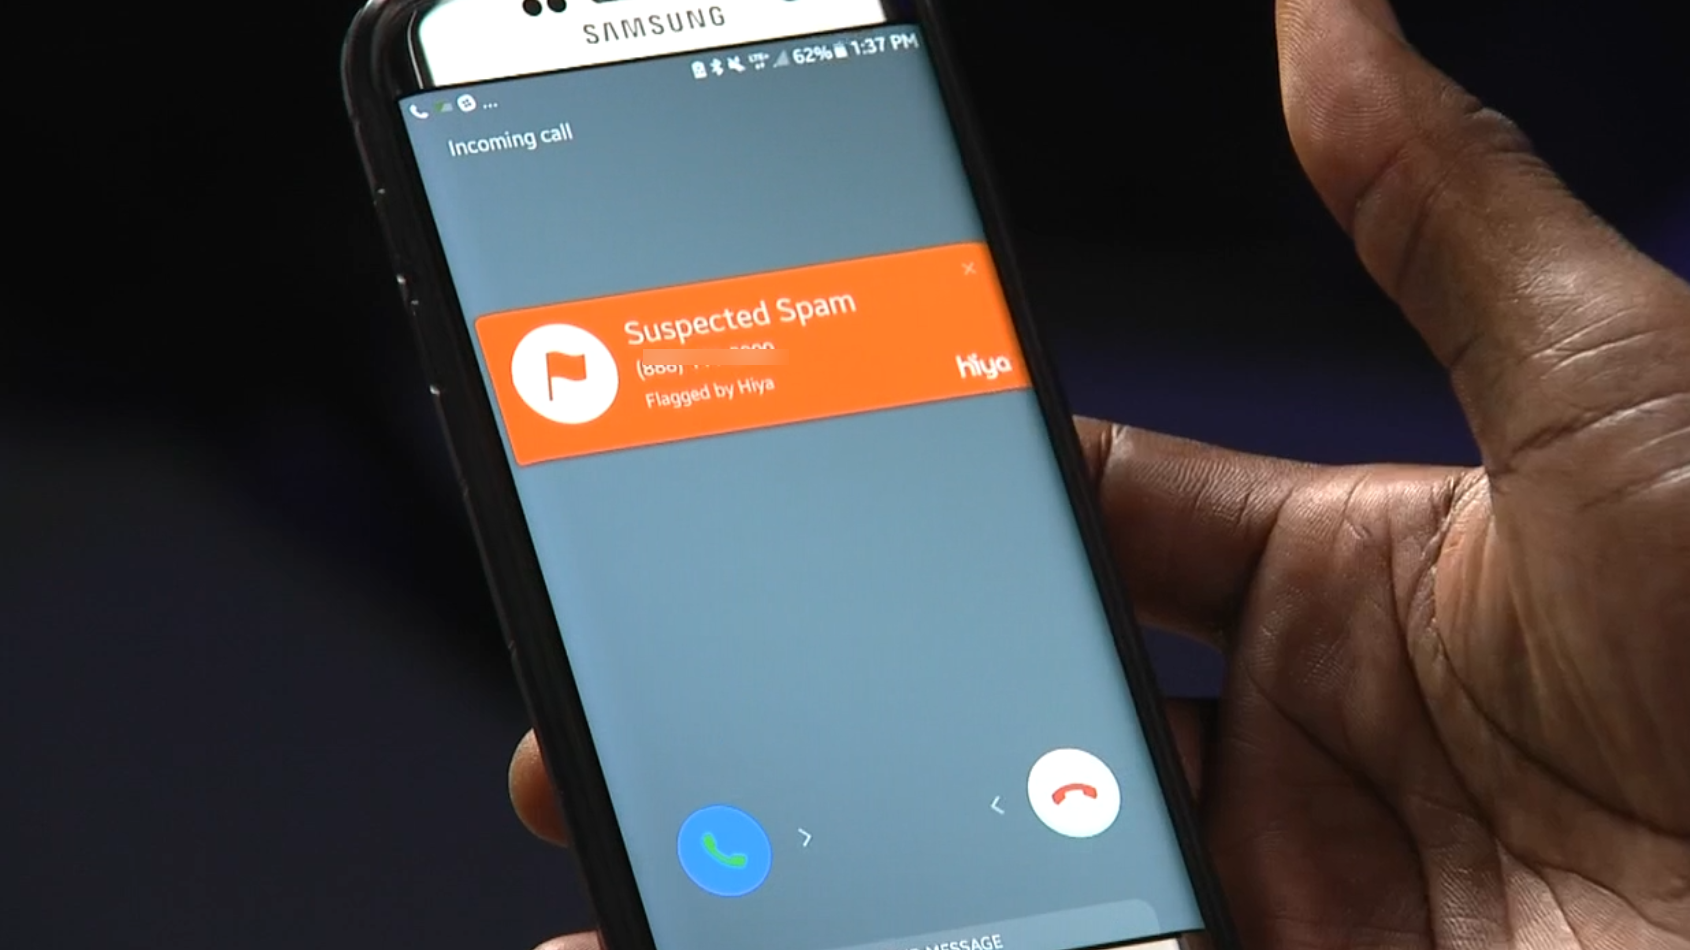 Have you been getting intimidating robo calls that sound like they're coming from the IRS? The NBC4 I-Team's Randy Mac wants to hear from you.